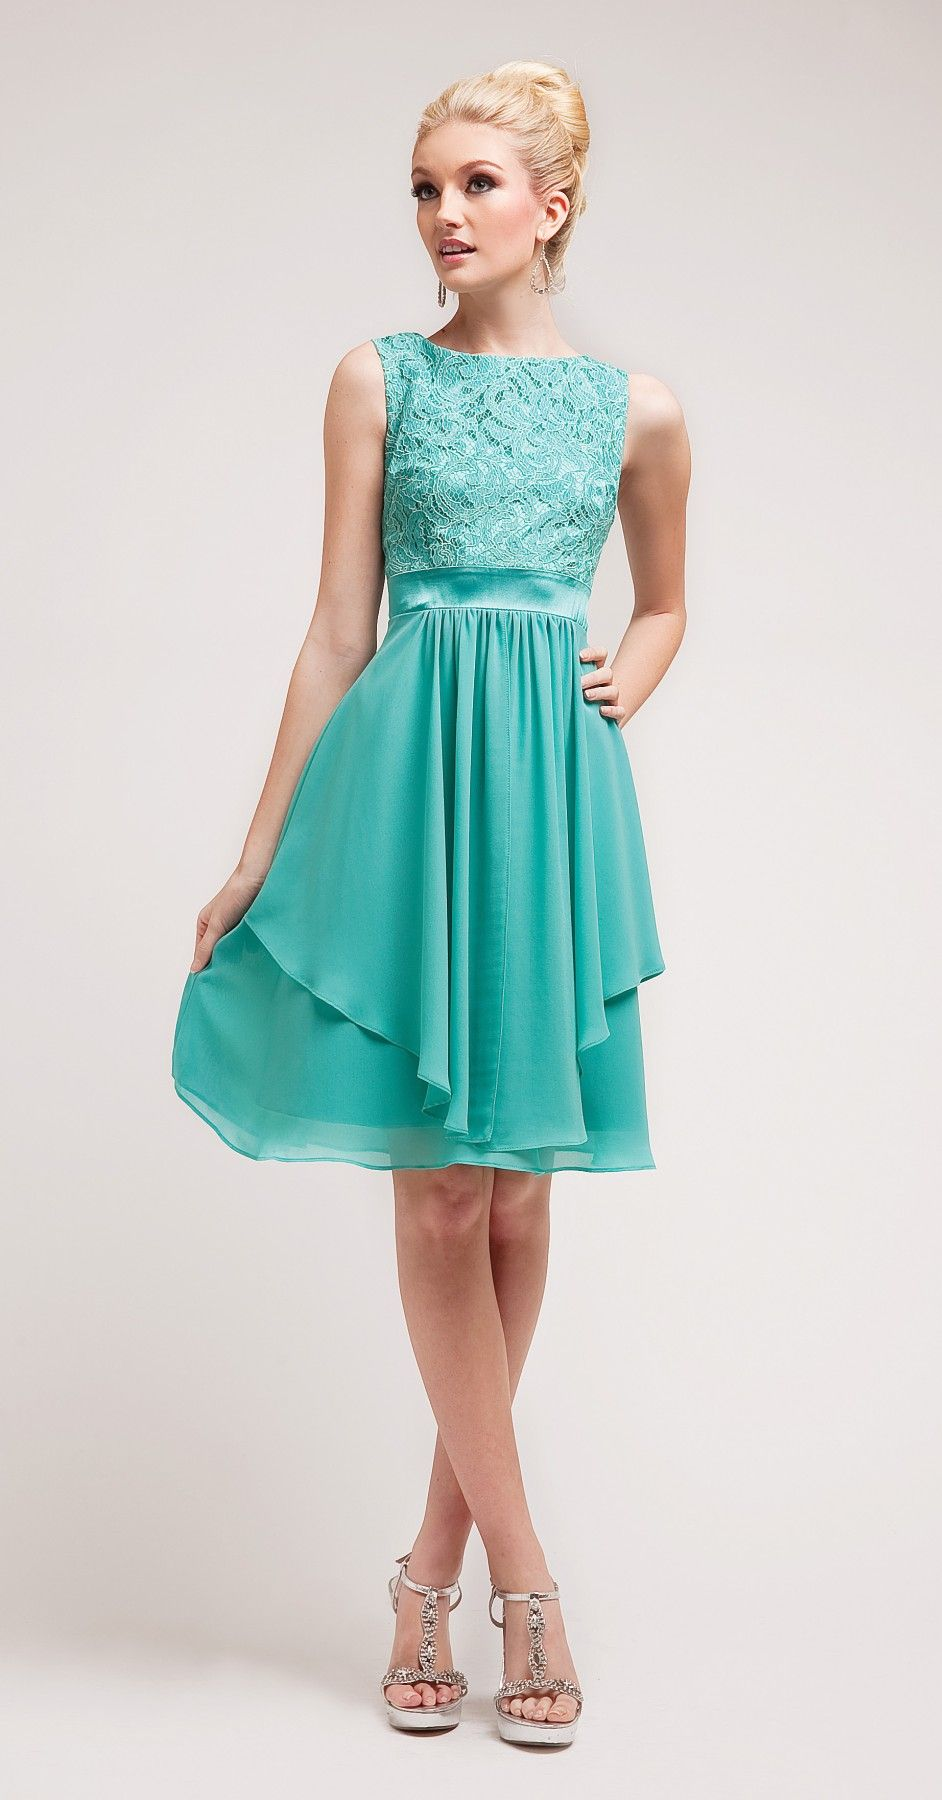 Knee Length Bridesmaid Dress Mint Green Lace Top Wide Straps Chiffon ...